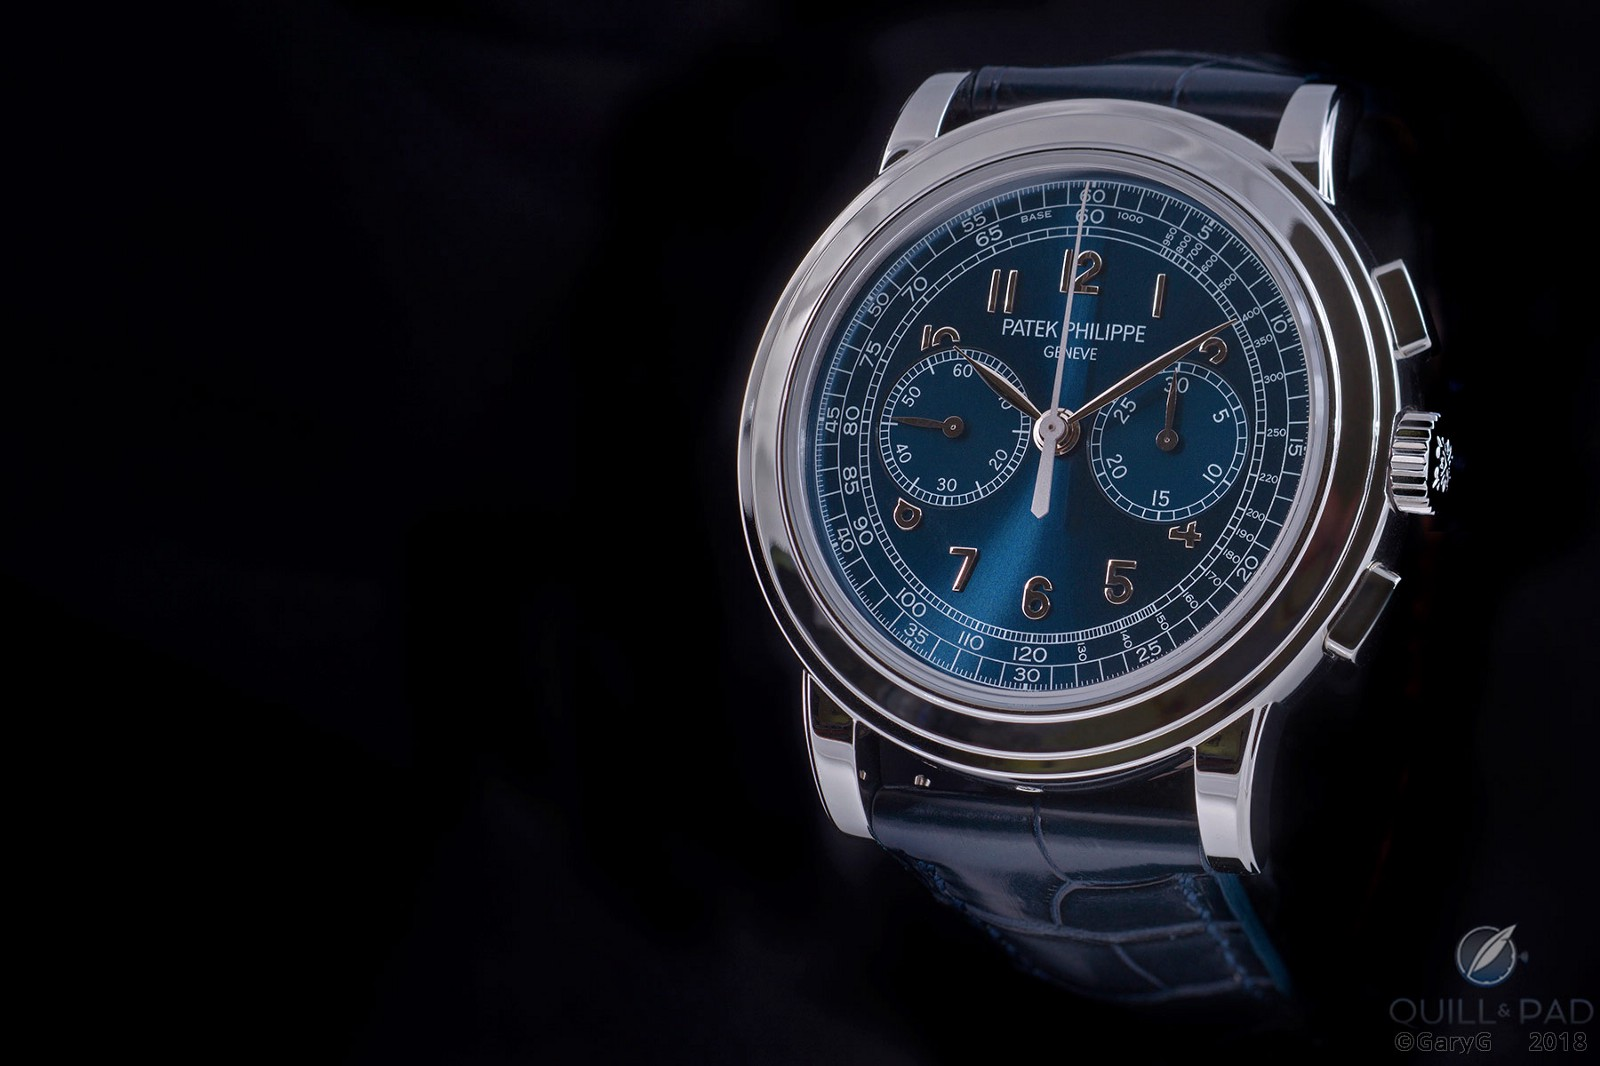 Slightly different and oh so rare: Patek Philippe Reference 5070P-013